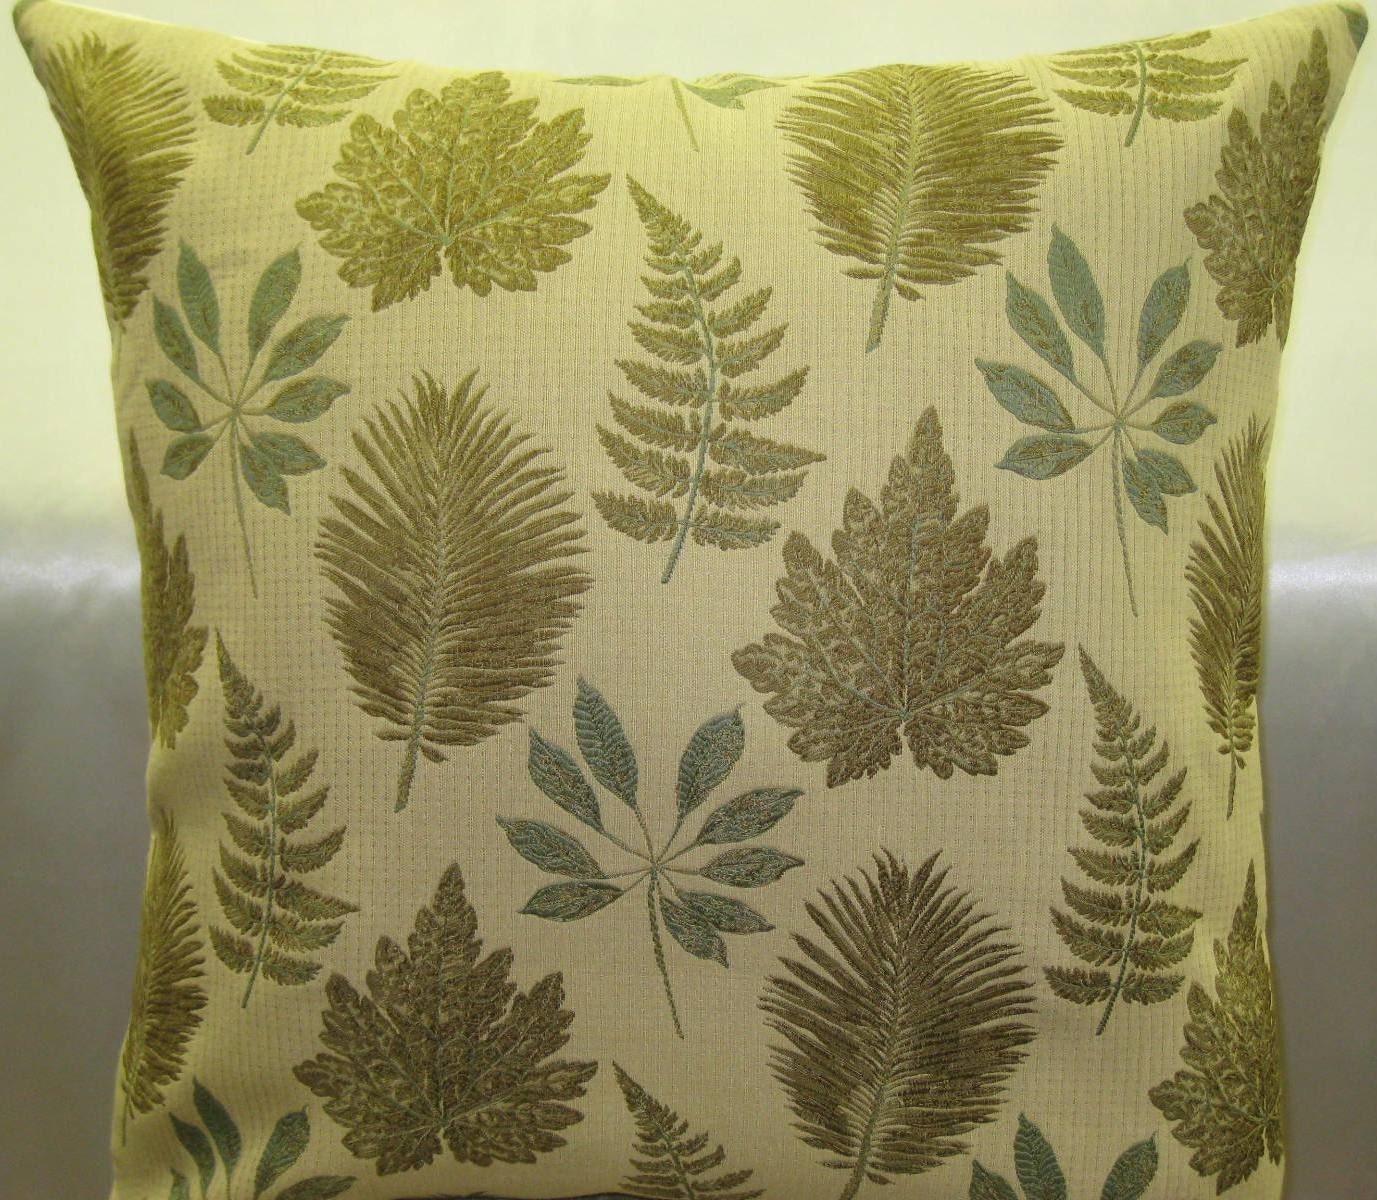 Spring green leaves pattern decorative pillow